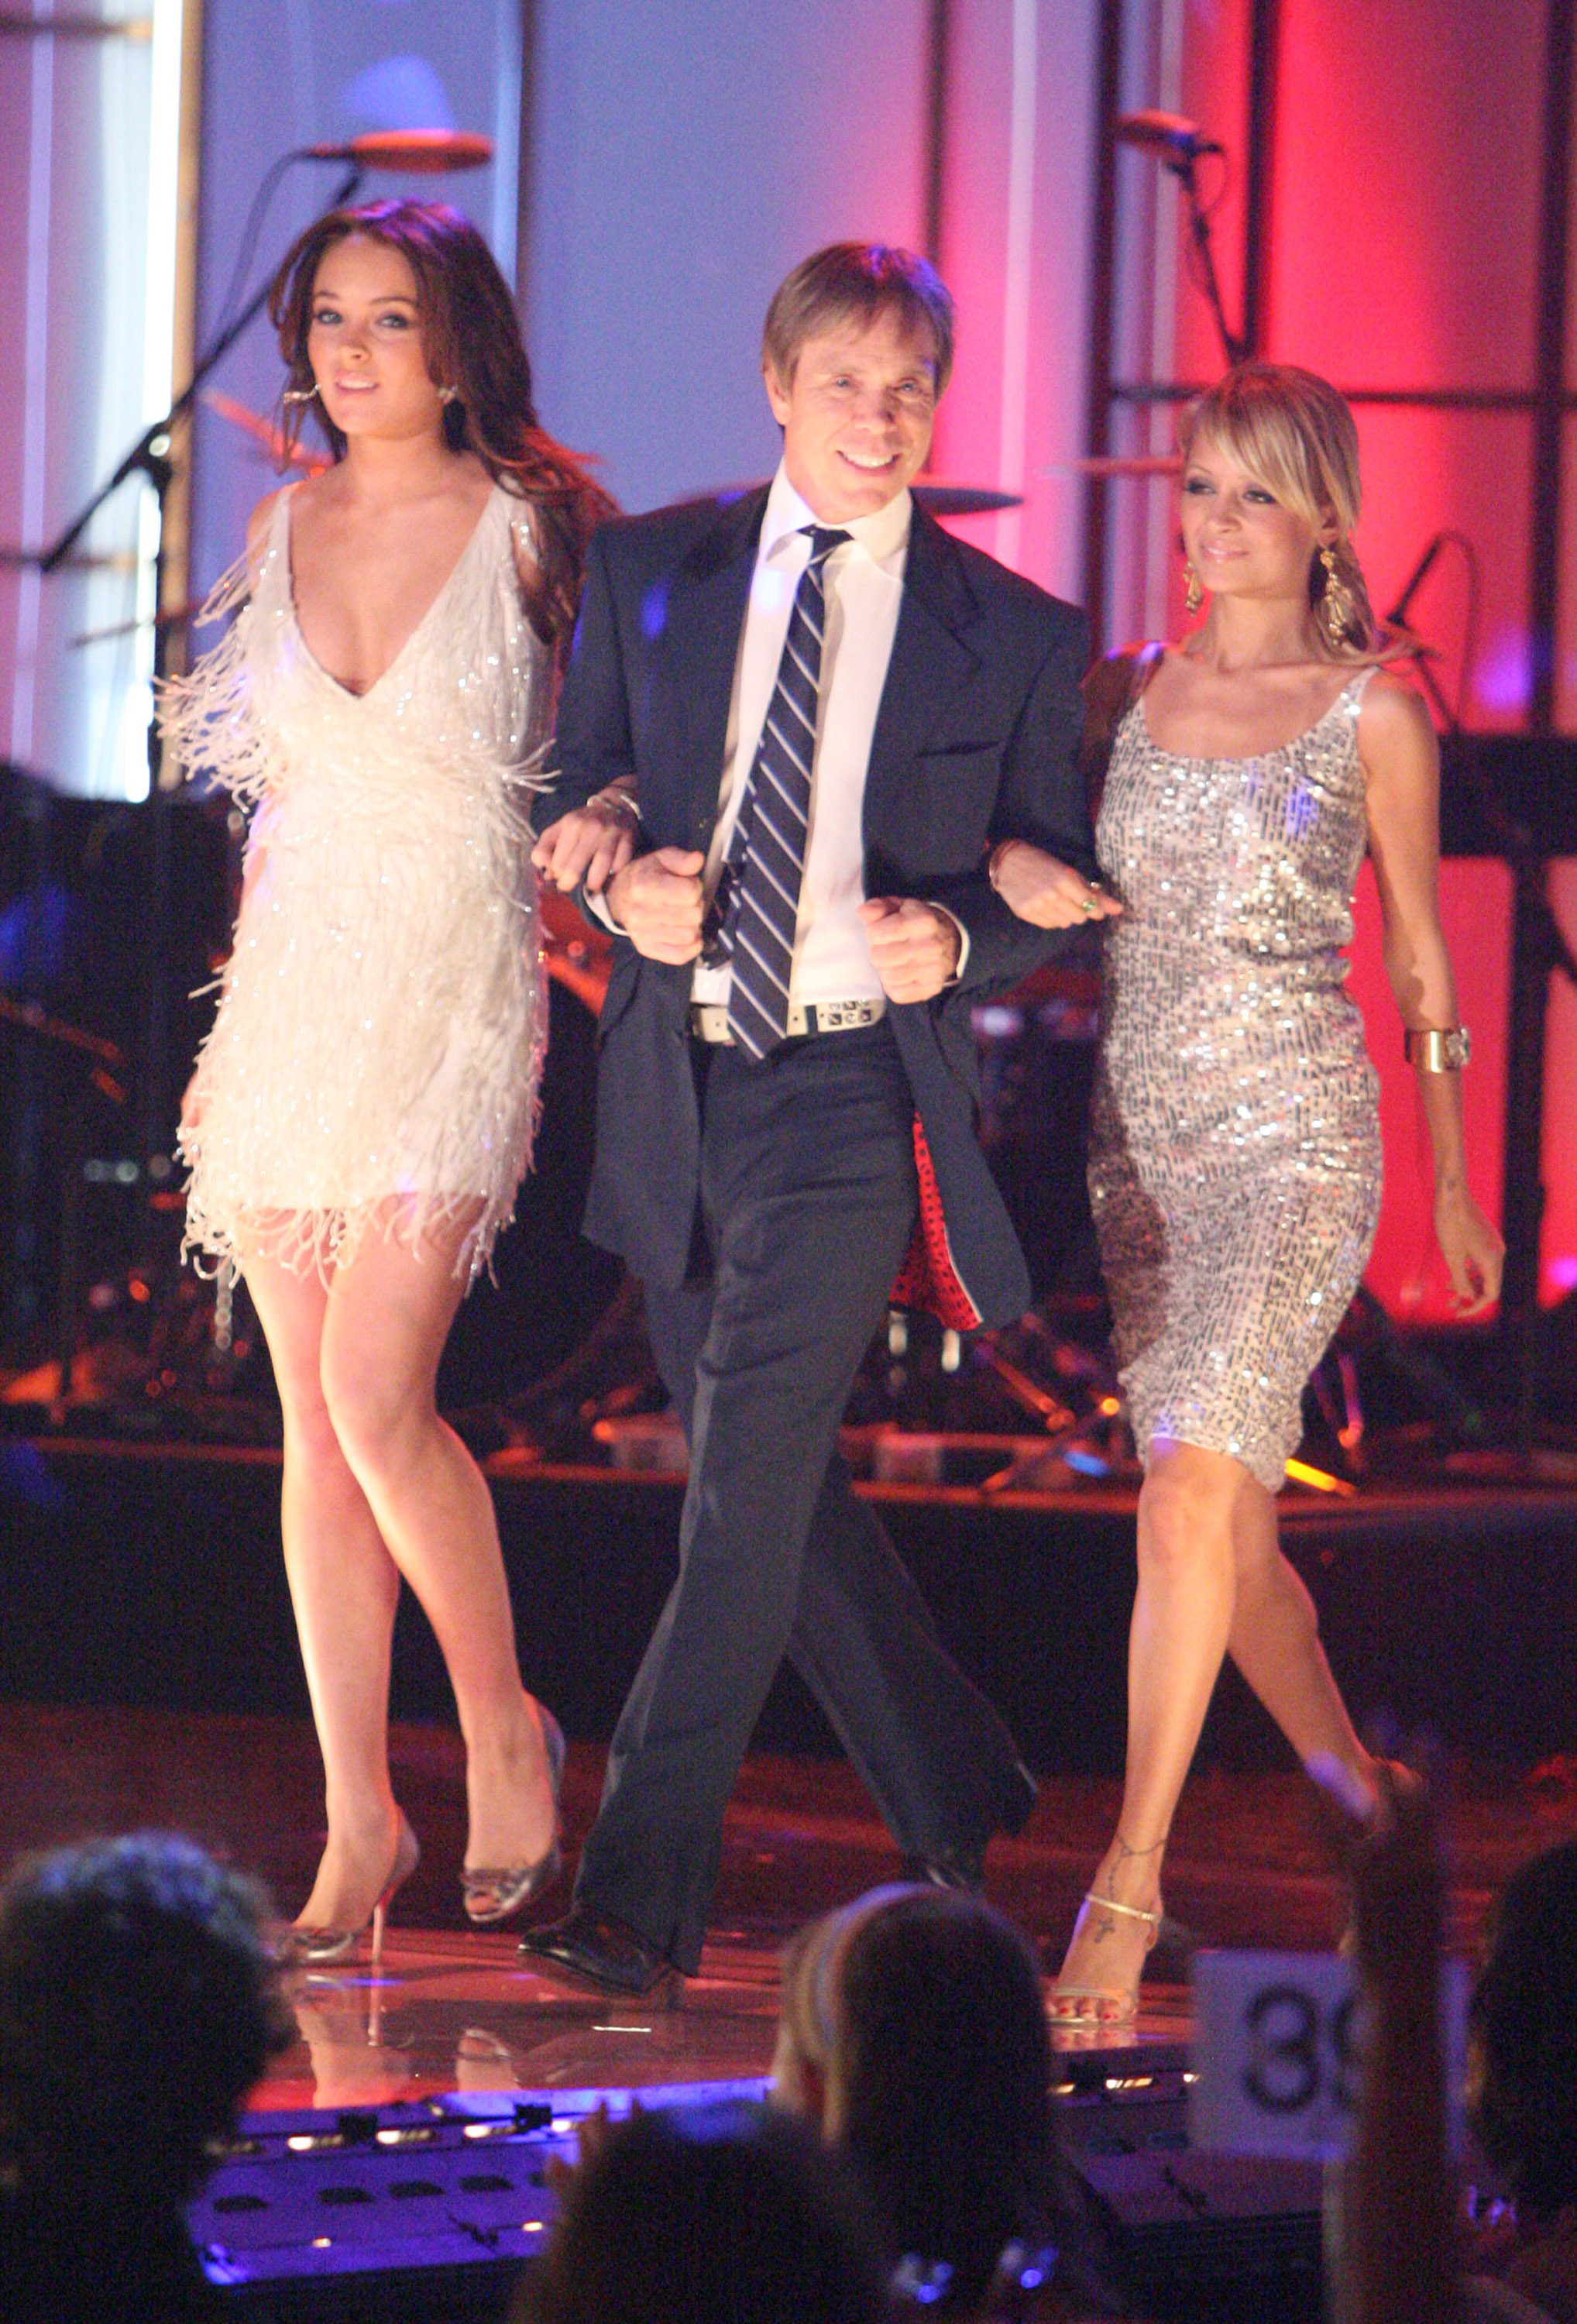 lindsay lohan, tommy hilfiger and nicole richie arm in arm walking on a stage